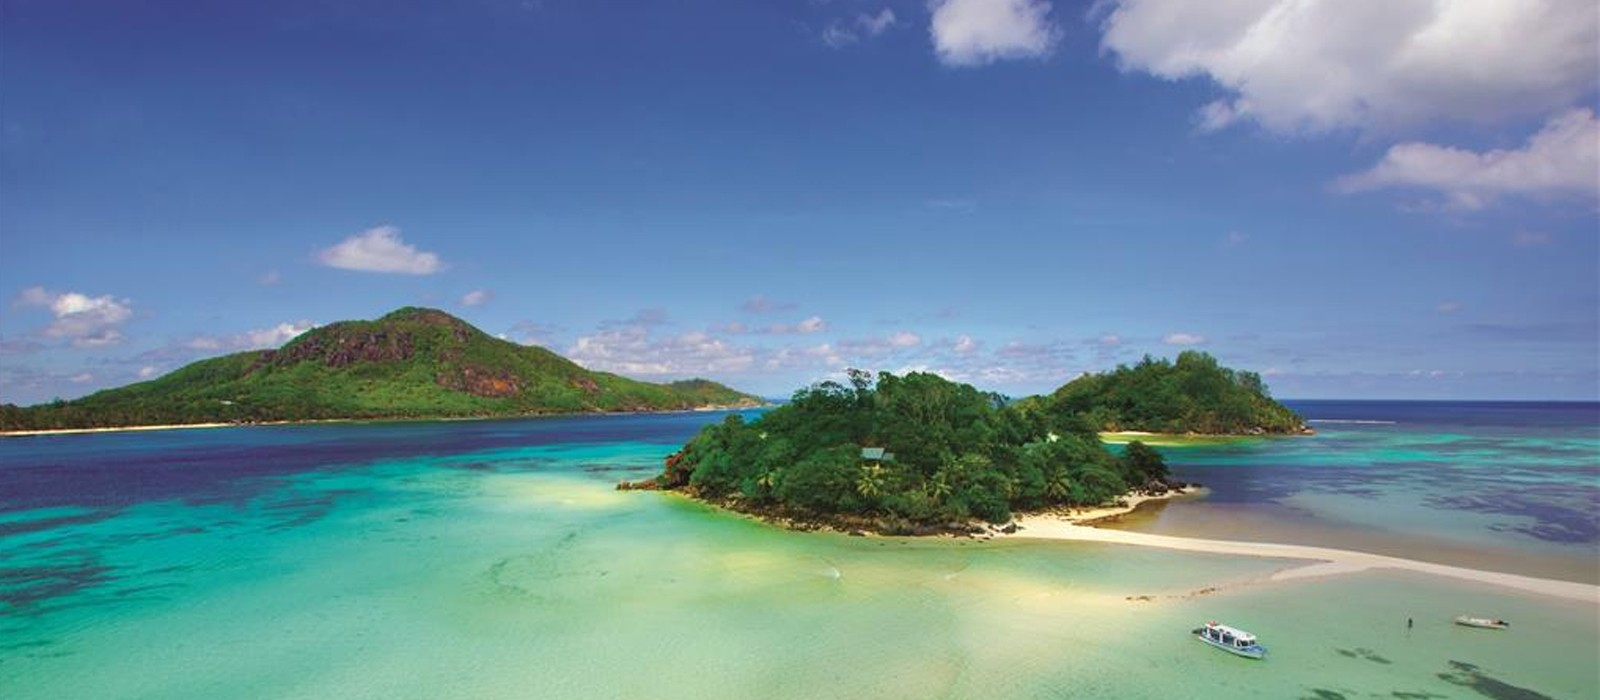 heder - Enchanted Island Resort - Seychelles luxury holiday packages - beach